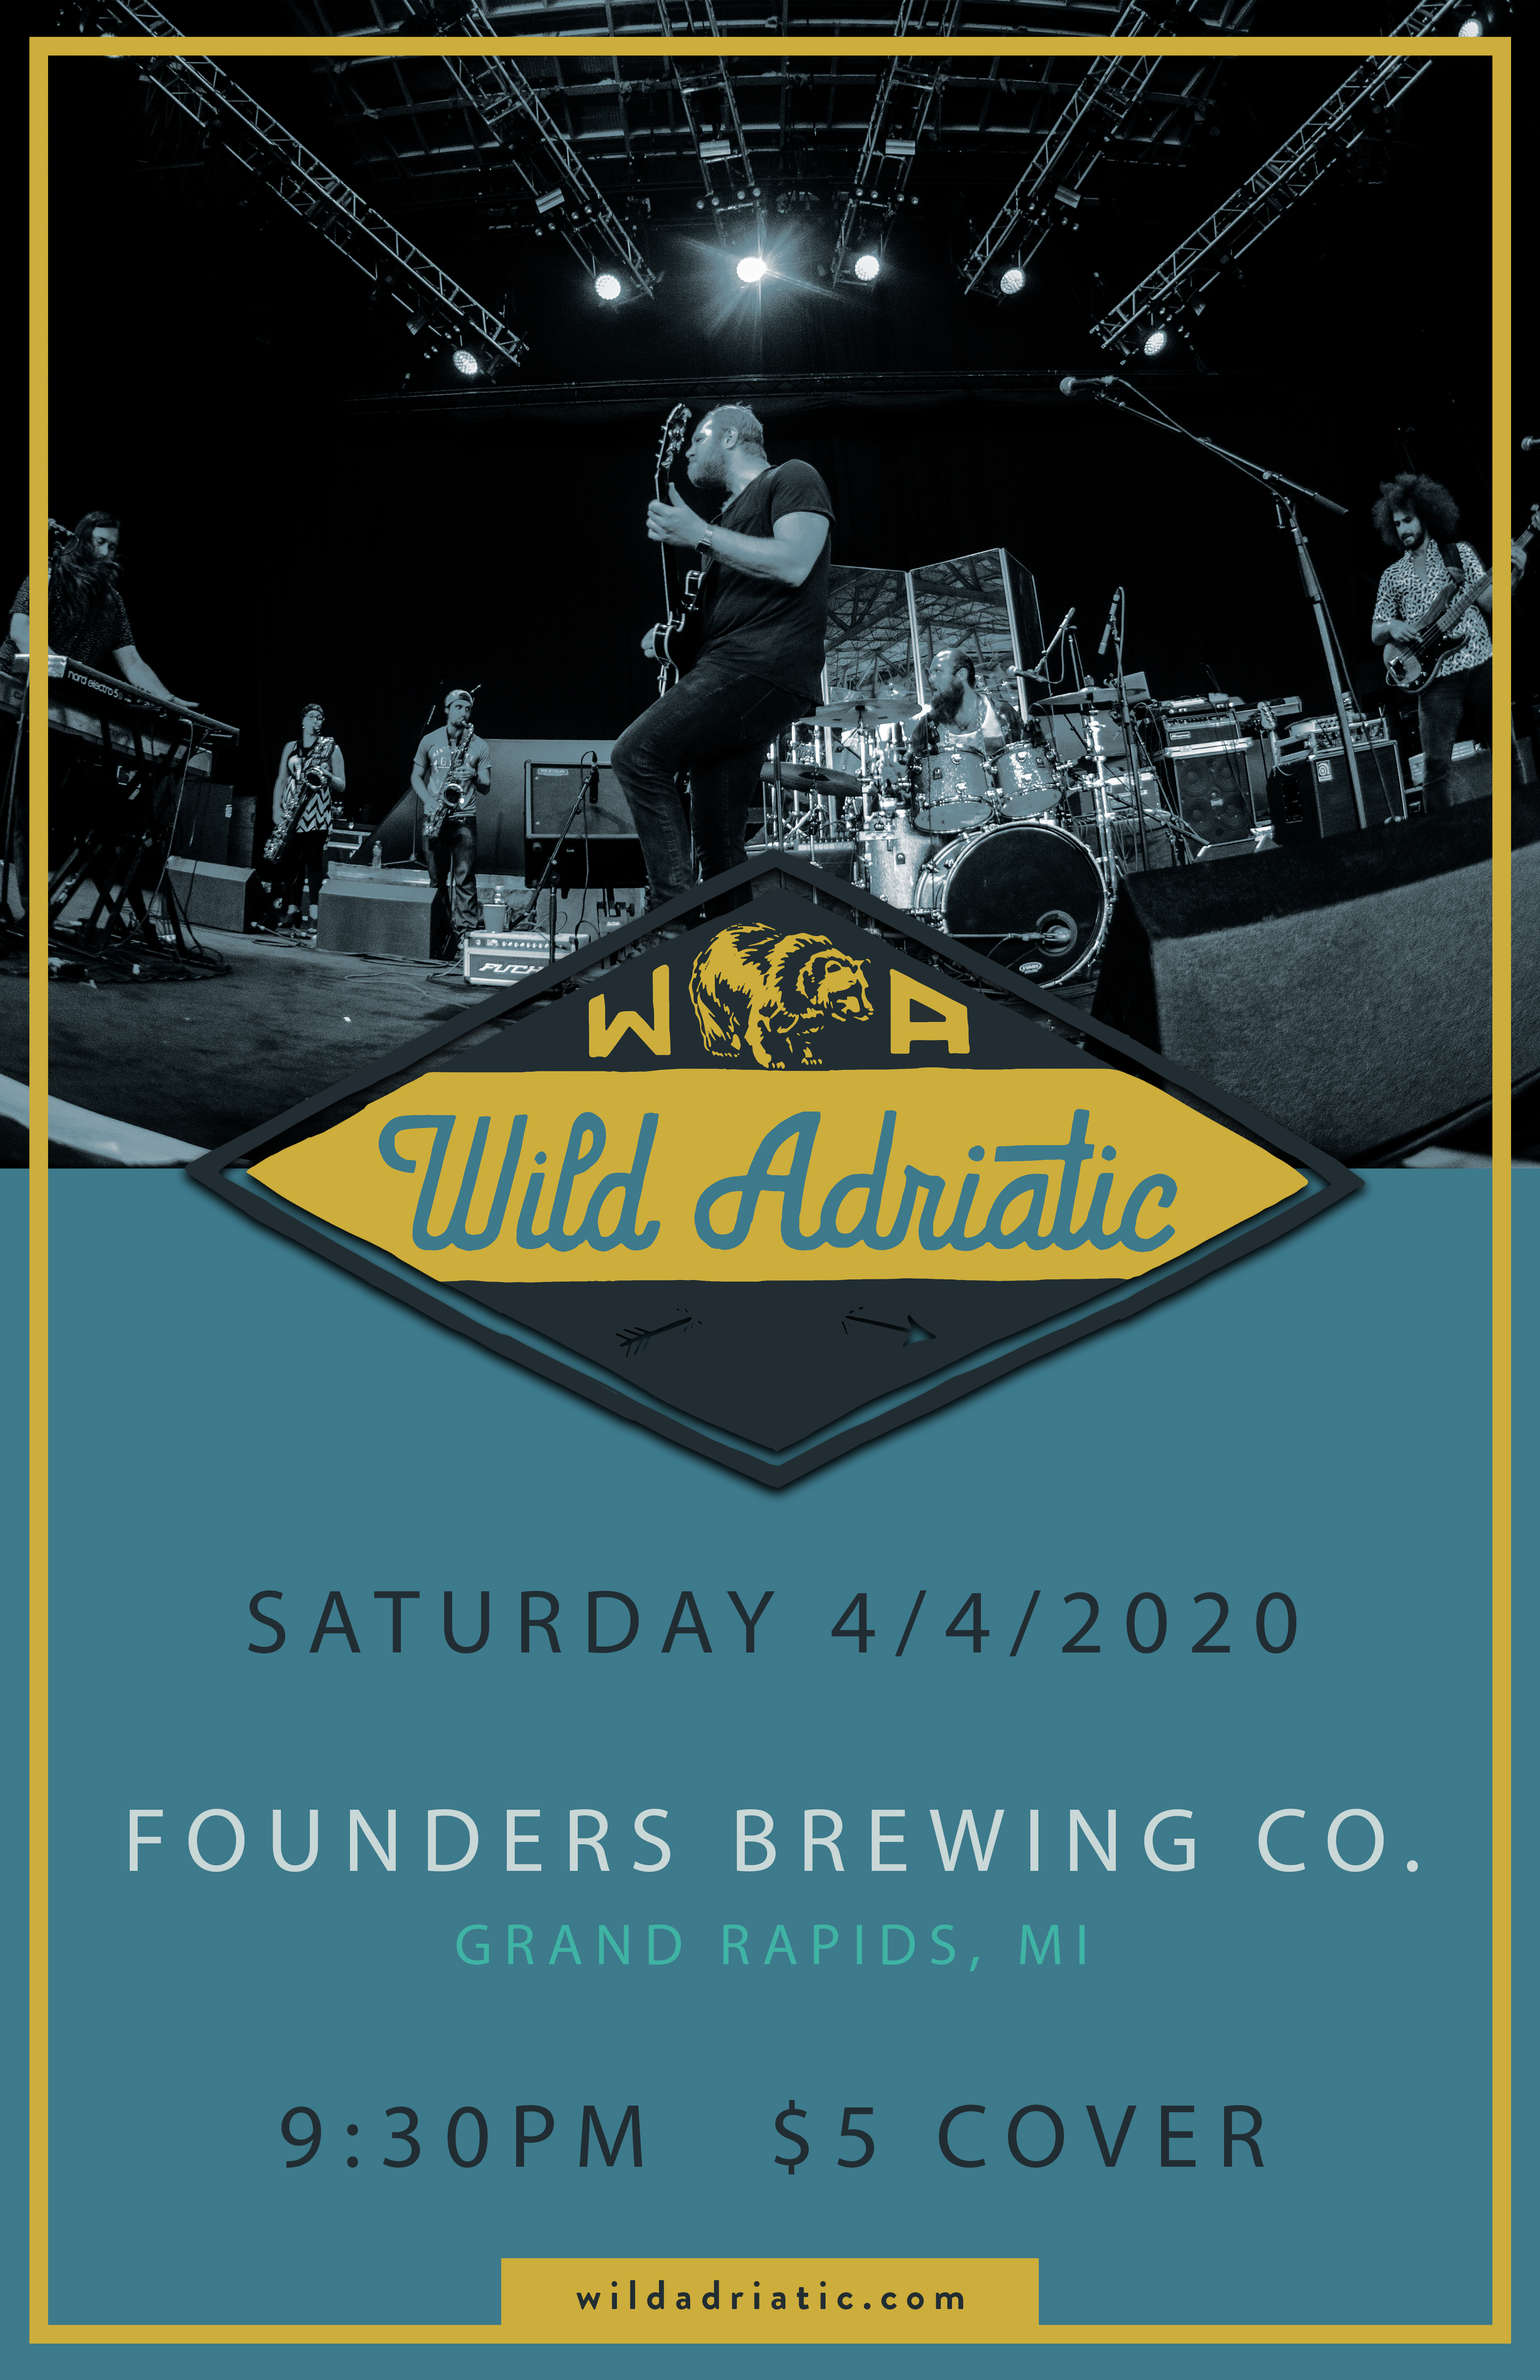 Wild Adriatic event poster hosted by Founder's Brewing Co.